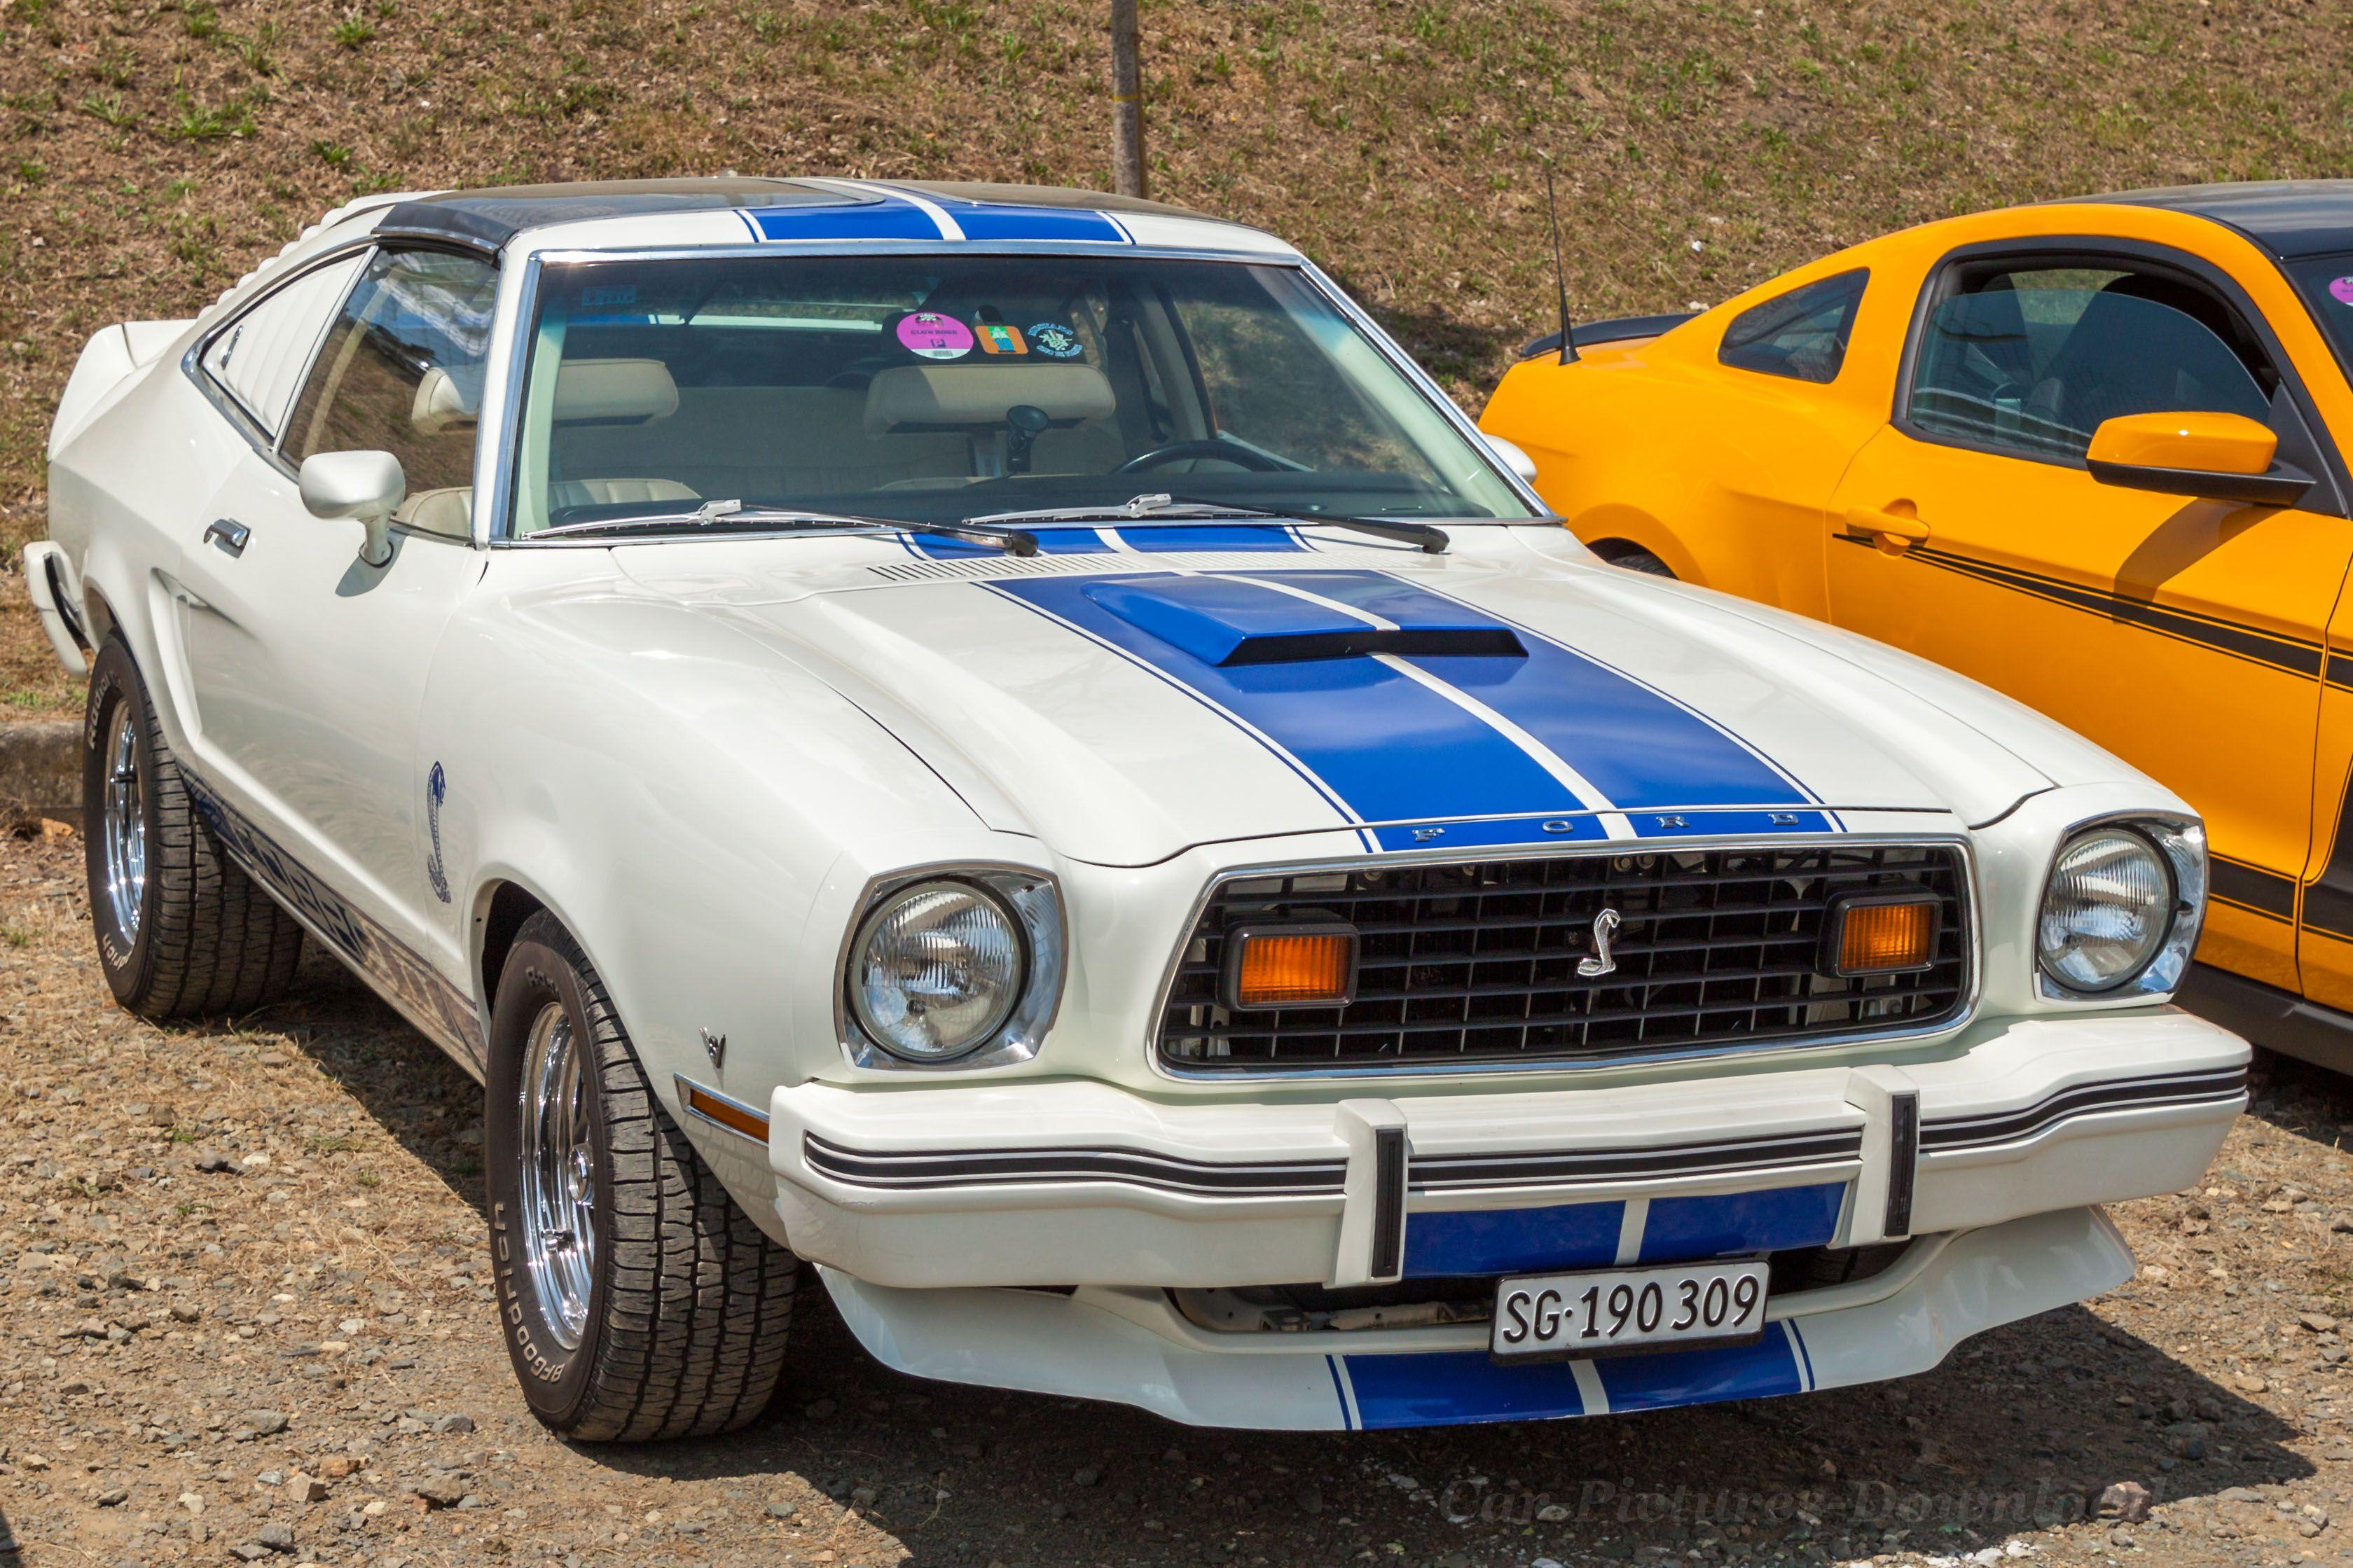 Muscle Car Pictures & HD Wallpapers Of Mustangs, Camaros, Corvettes